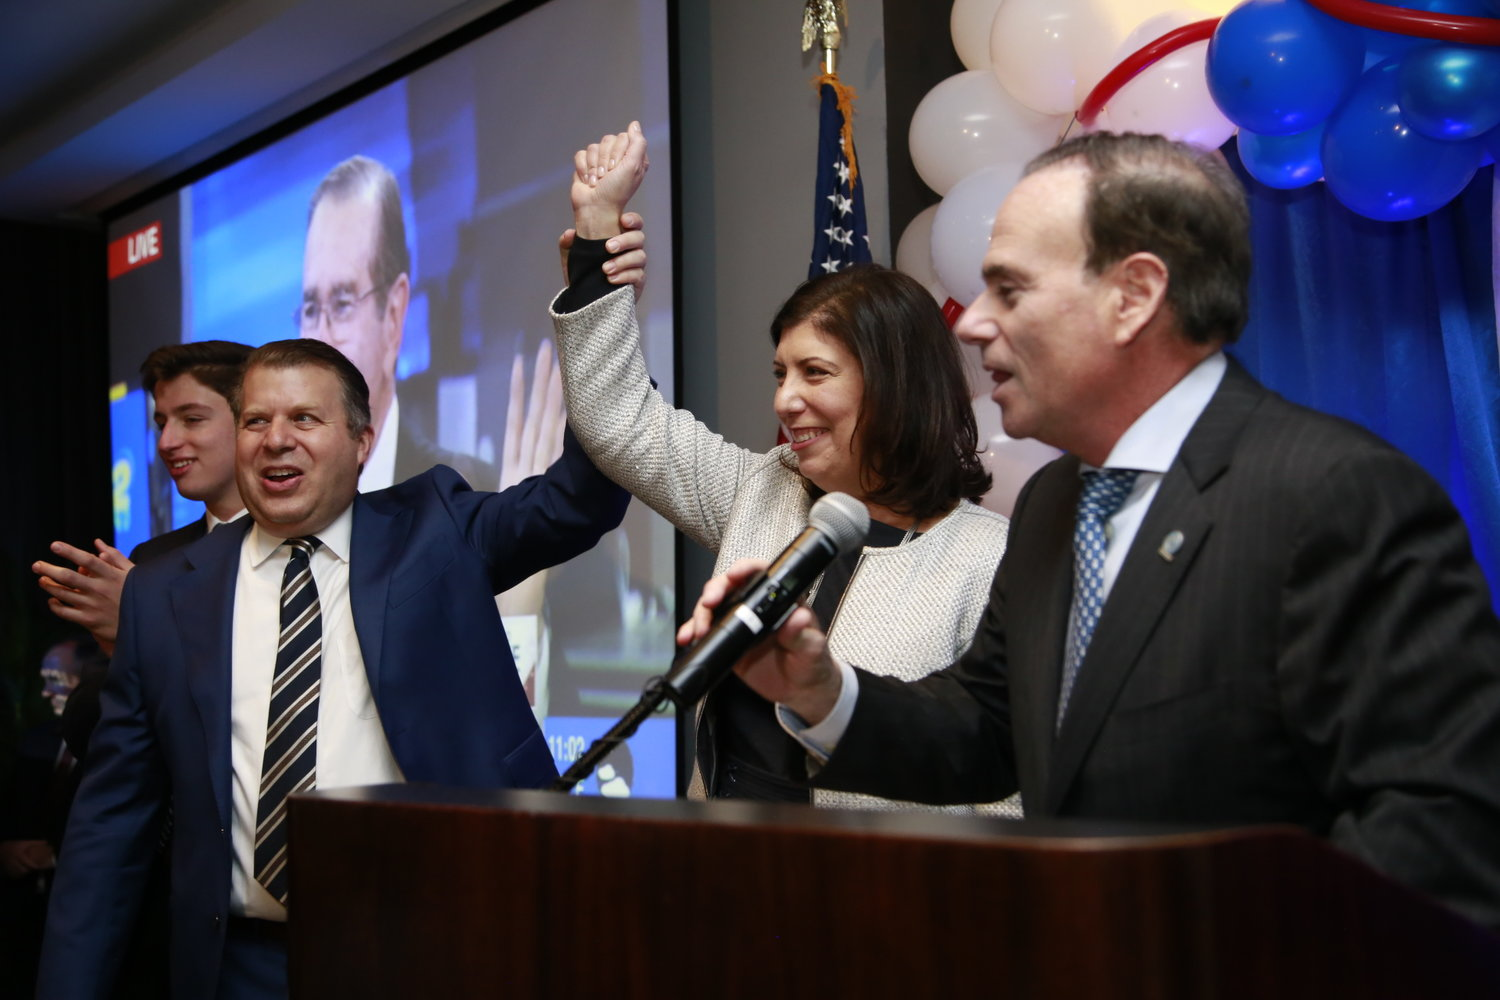 Nassau County District Attorney Madeline Singas declared victory early. She was joined here by her husband, Theo Apostolou, left, and Nassau Democratic Party Chairman Jay Jacobs.